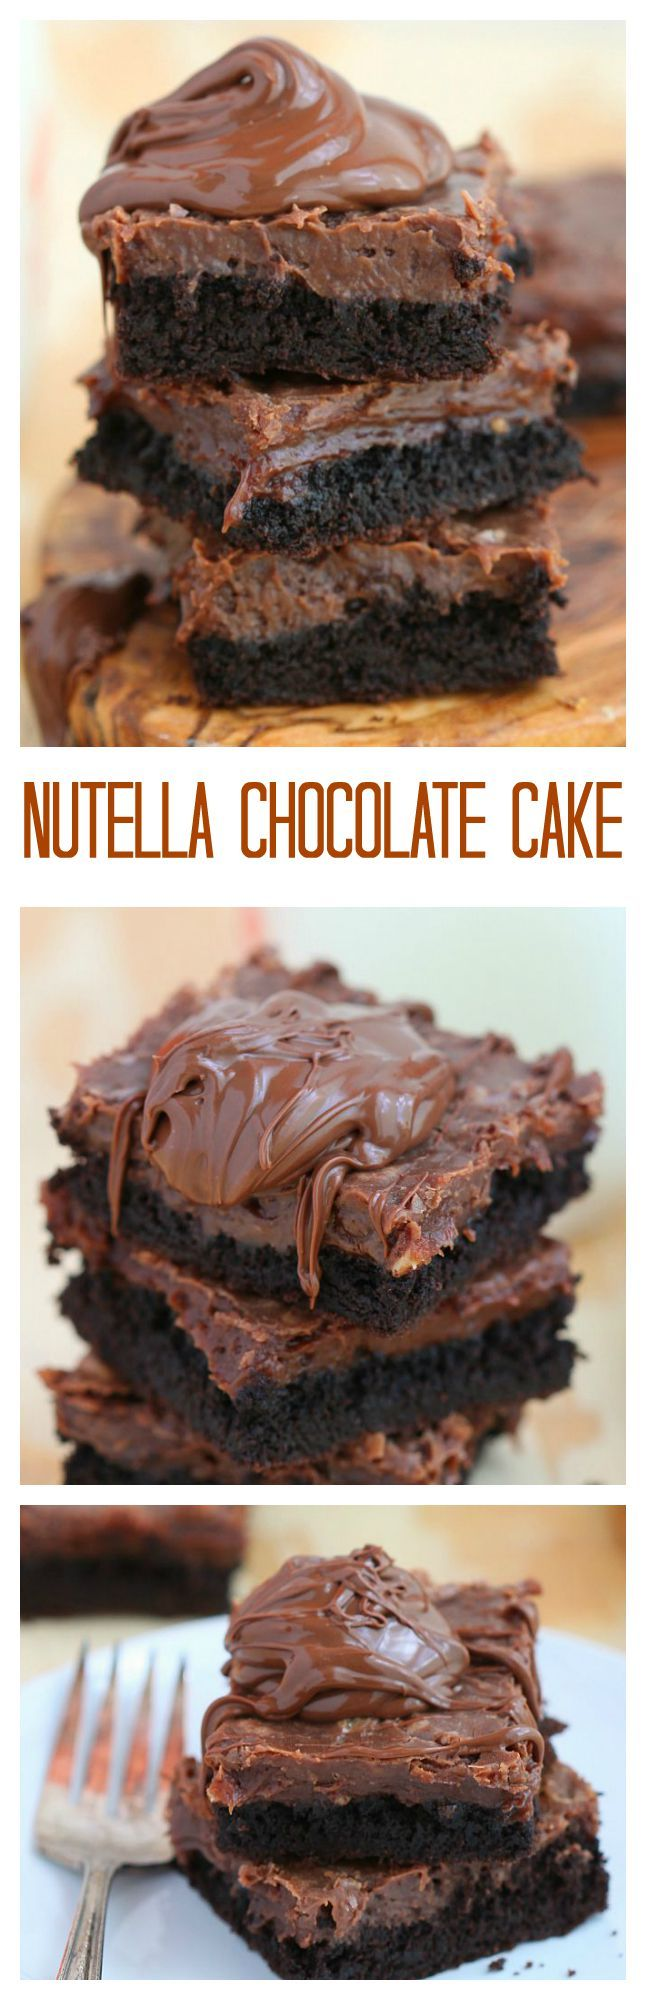 One of the easiest cake to make, this Nutella chocolate cake is so rich and delicious you won't want to share. Make it to your next party or pot-luck and everyone will beg for the recipe.